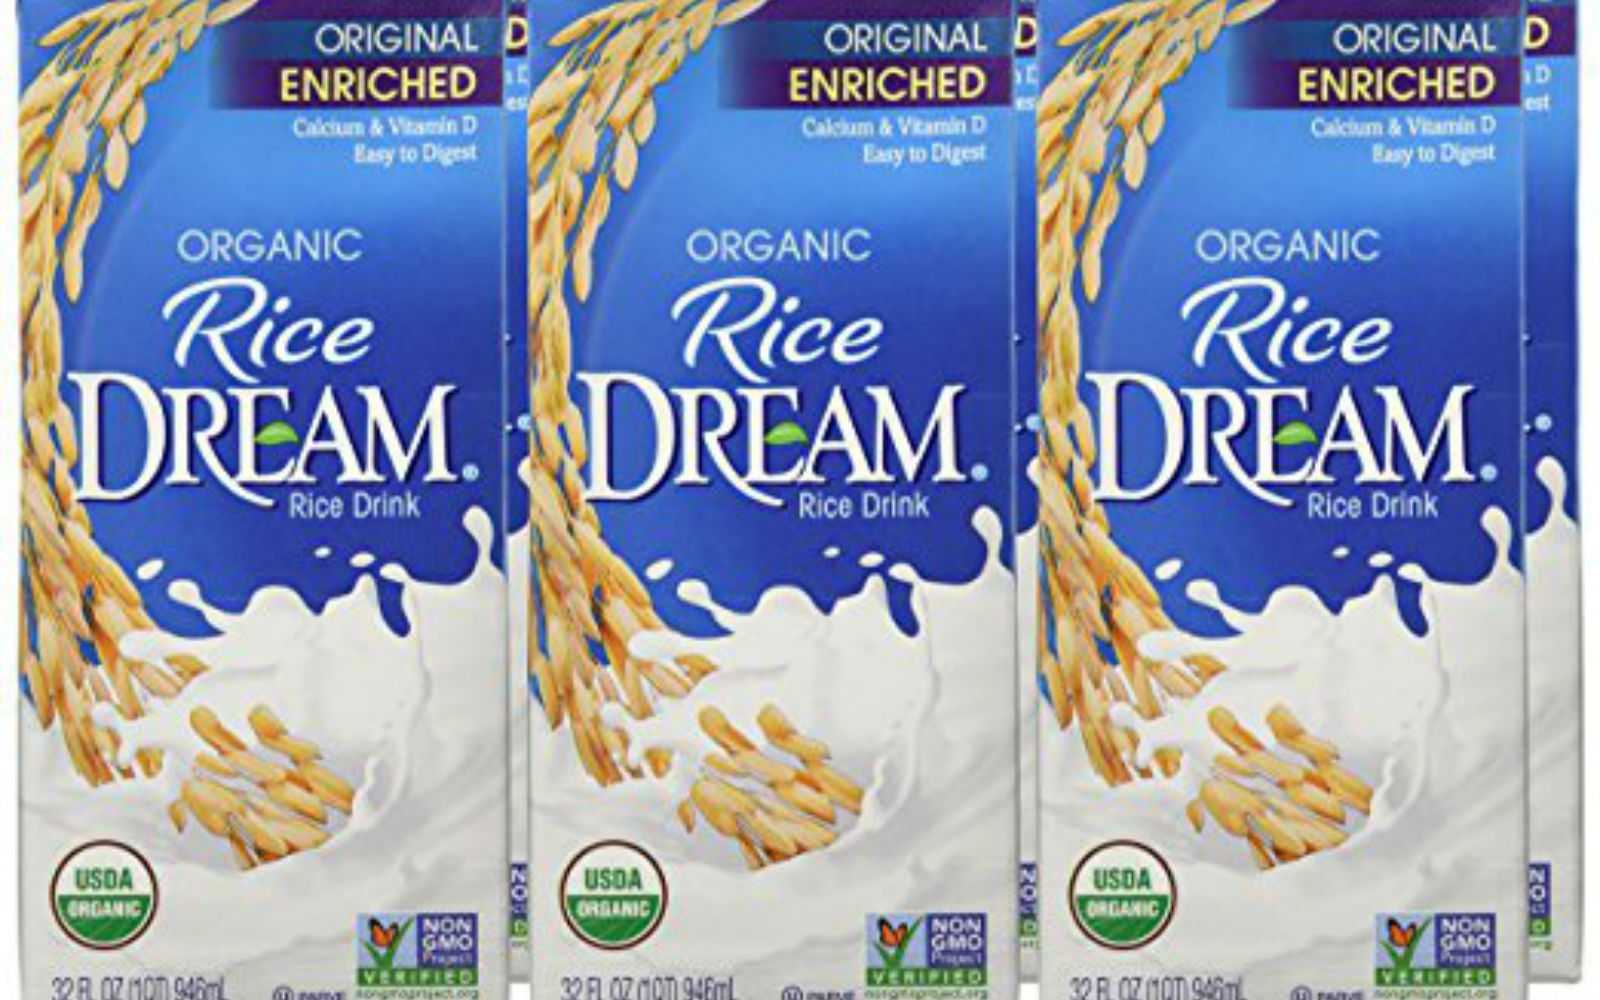 RICE DREAM Enriched Original Organic Rice Drink, 32 Fluid Ounce (Pack of 6)